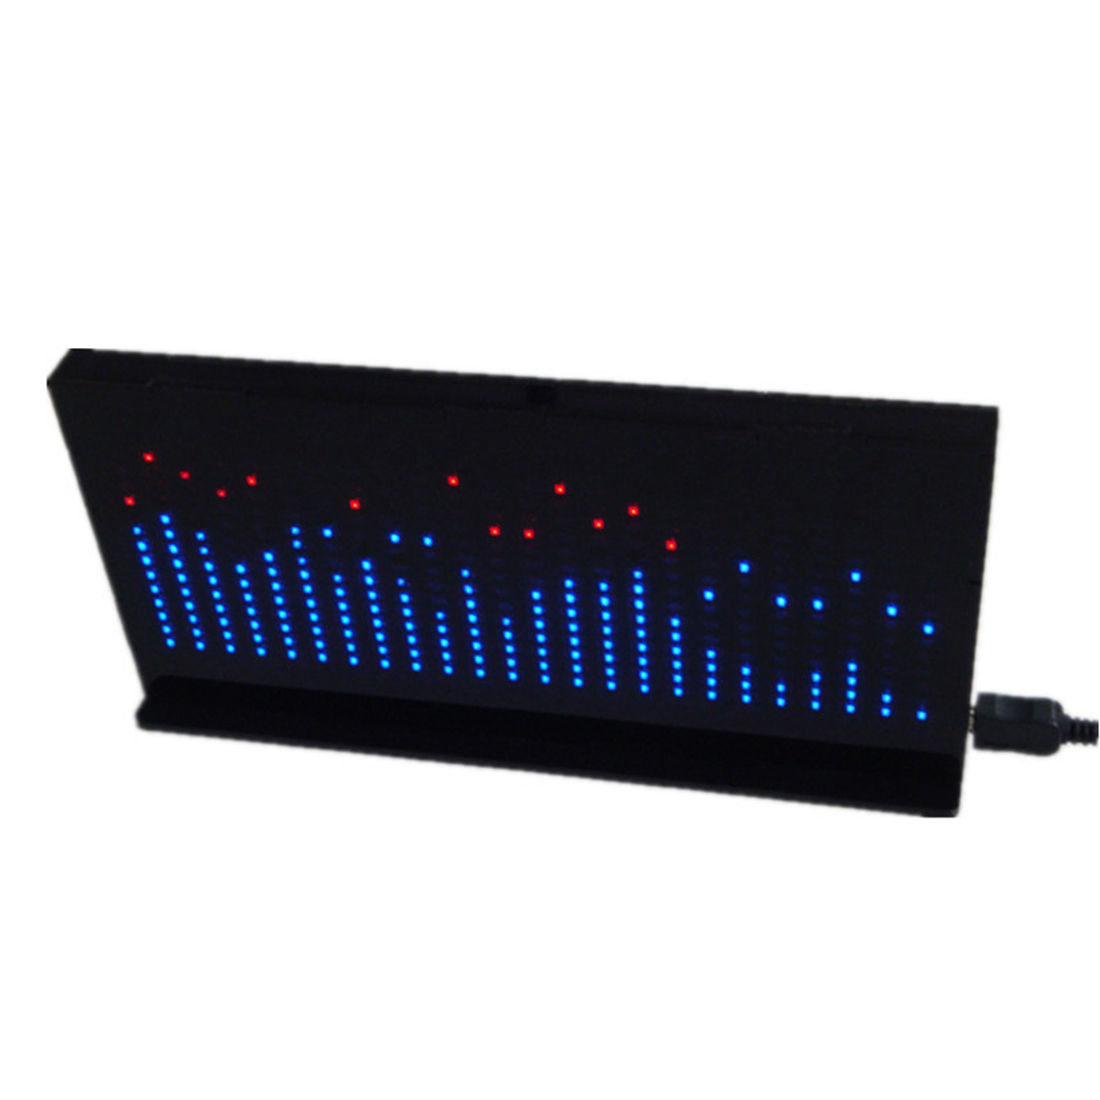 DIY Programmable Light Cube Kit AS1424 Music Spectrum LED Display For Audio Amplifier Modification Rhythm Lamp Finished Product